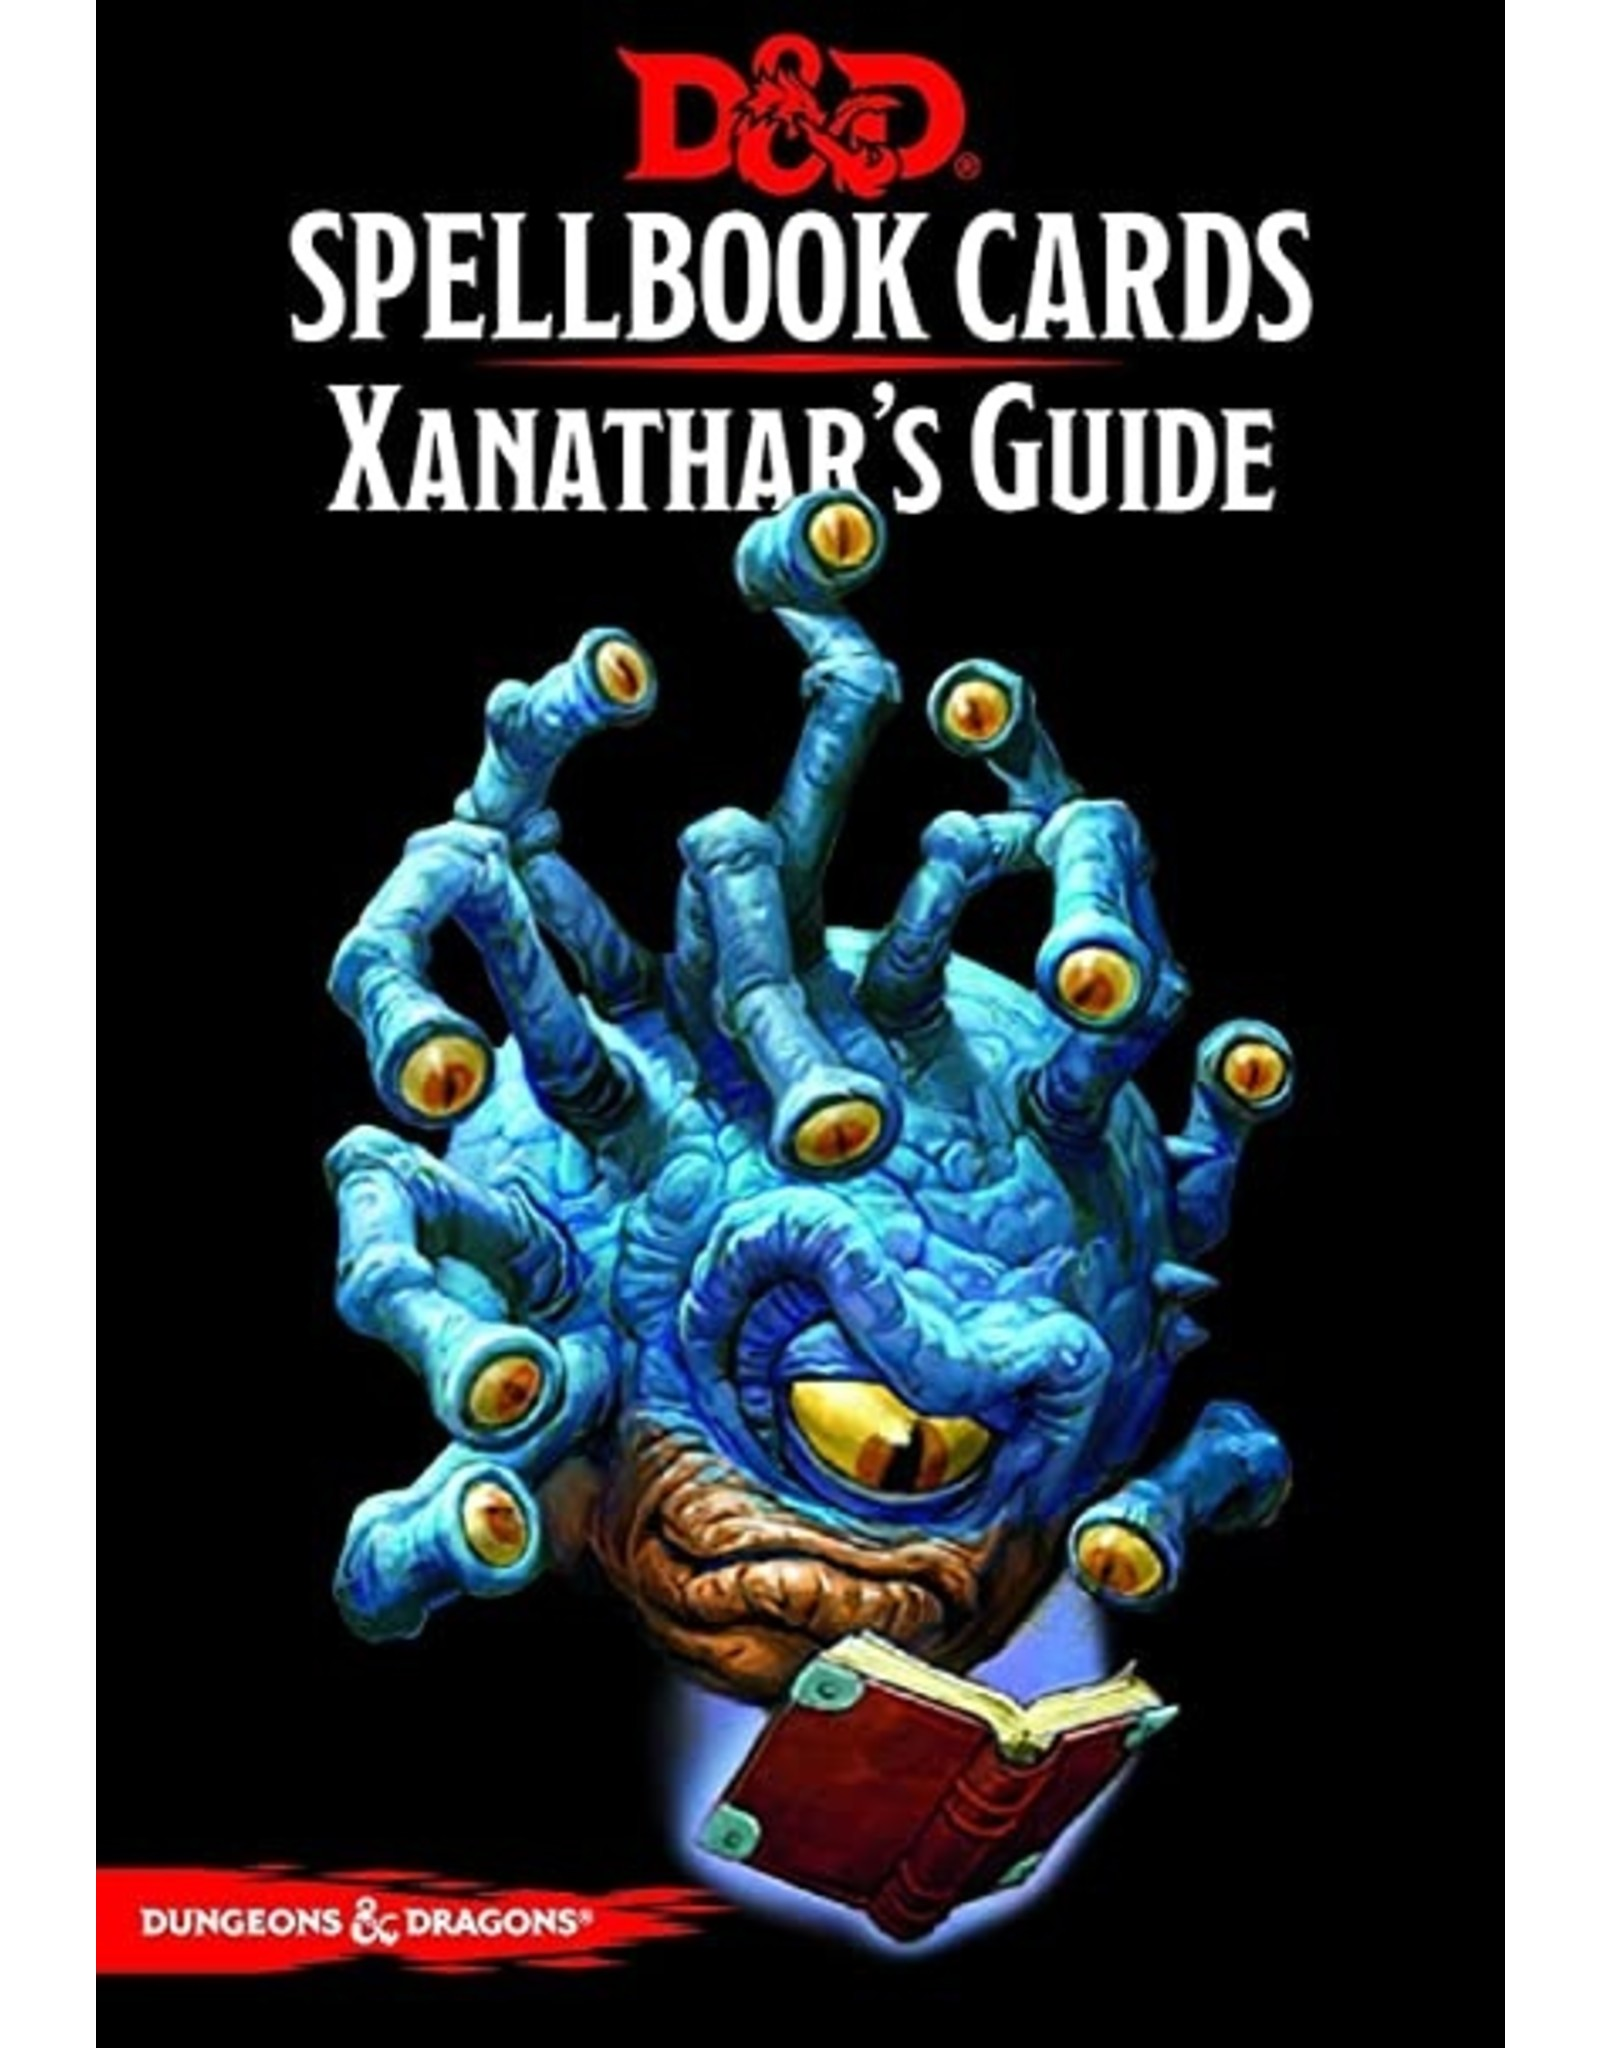 Dungeons & Dragons D&D Spellbook cards Xanathar's Guide Deck